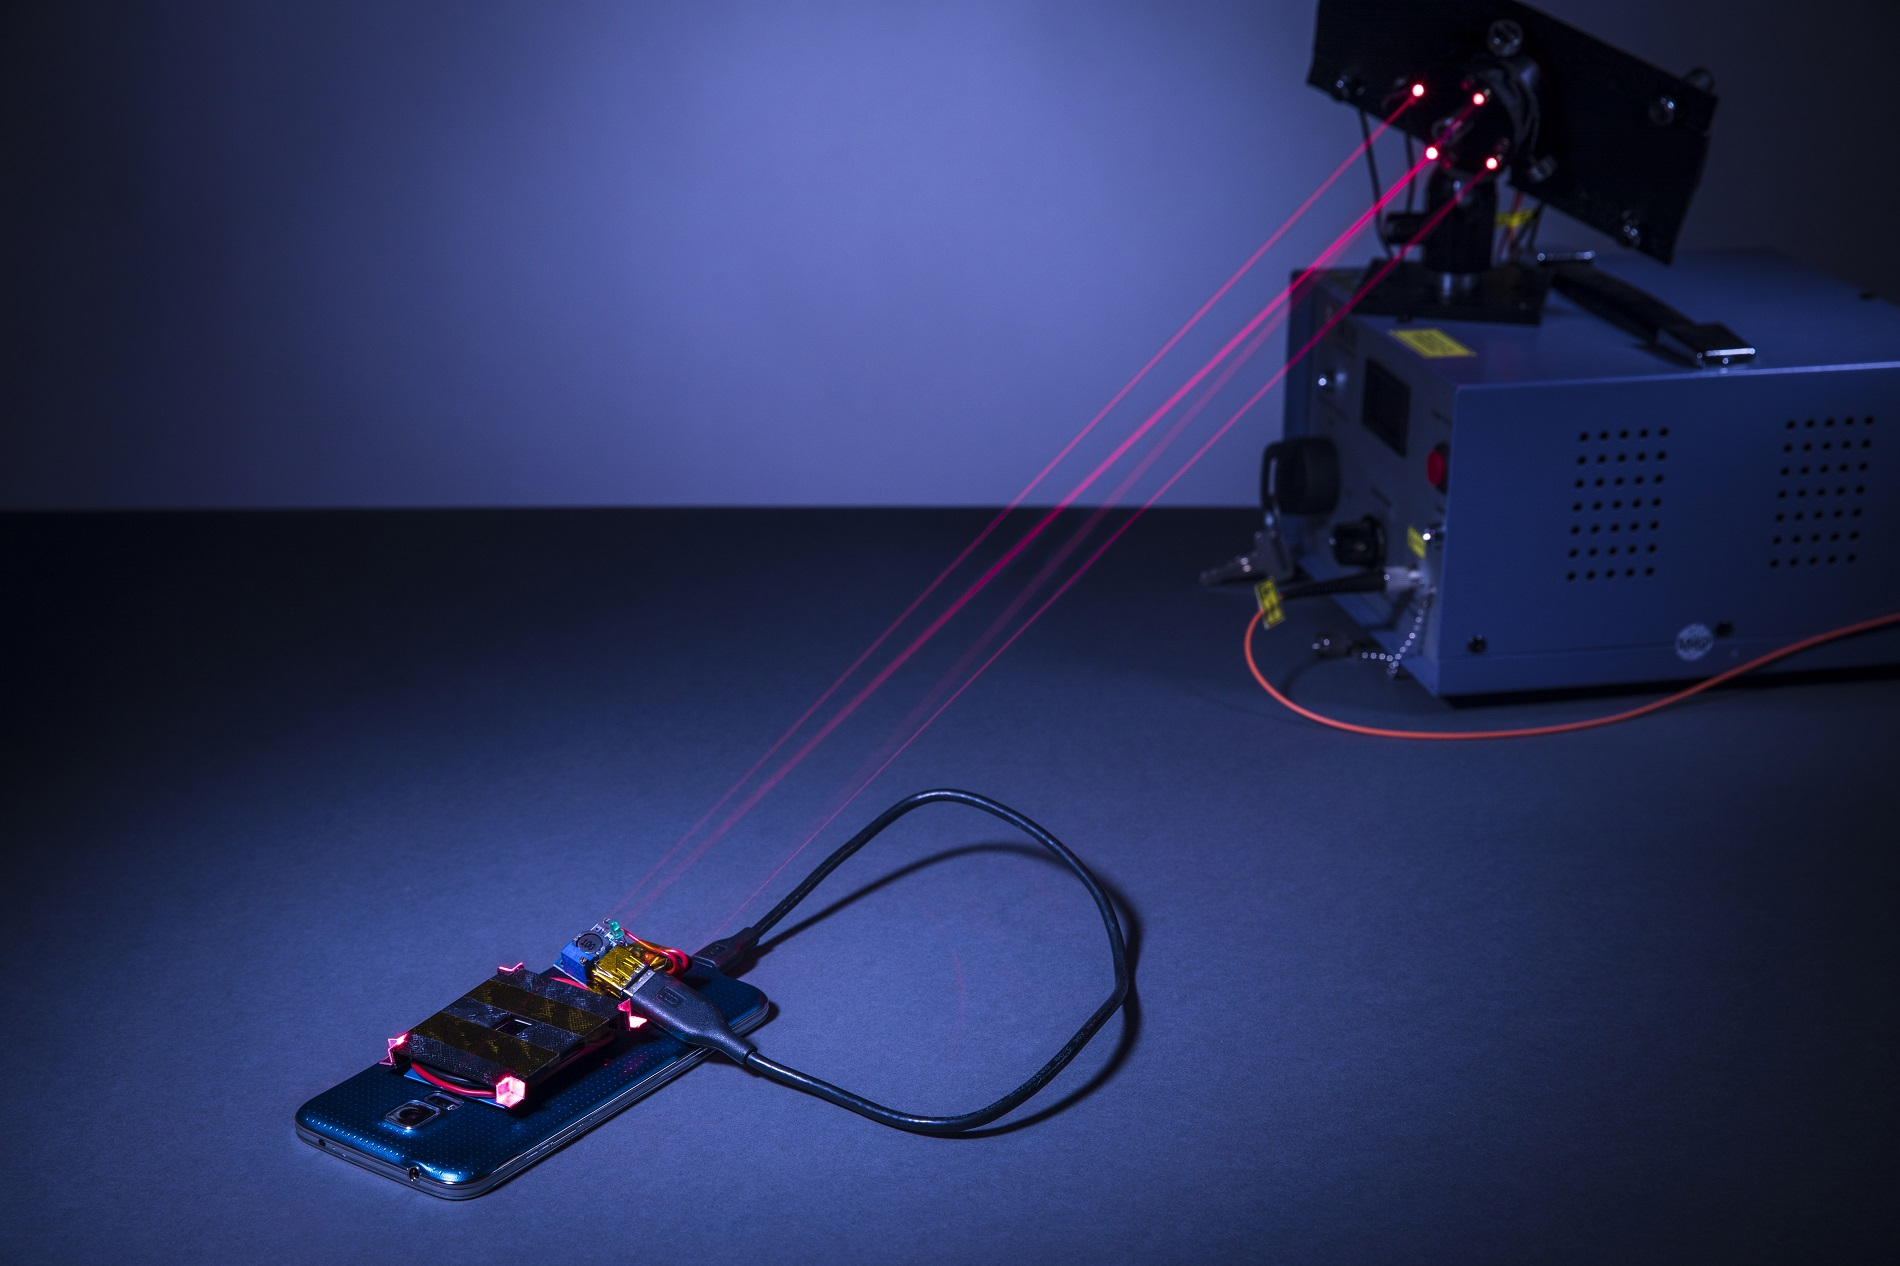 The wireless charging system created by University of Washington engineers